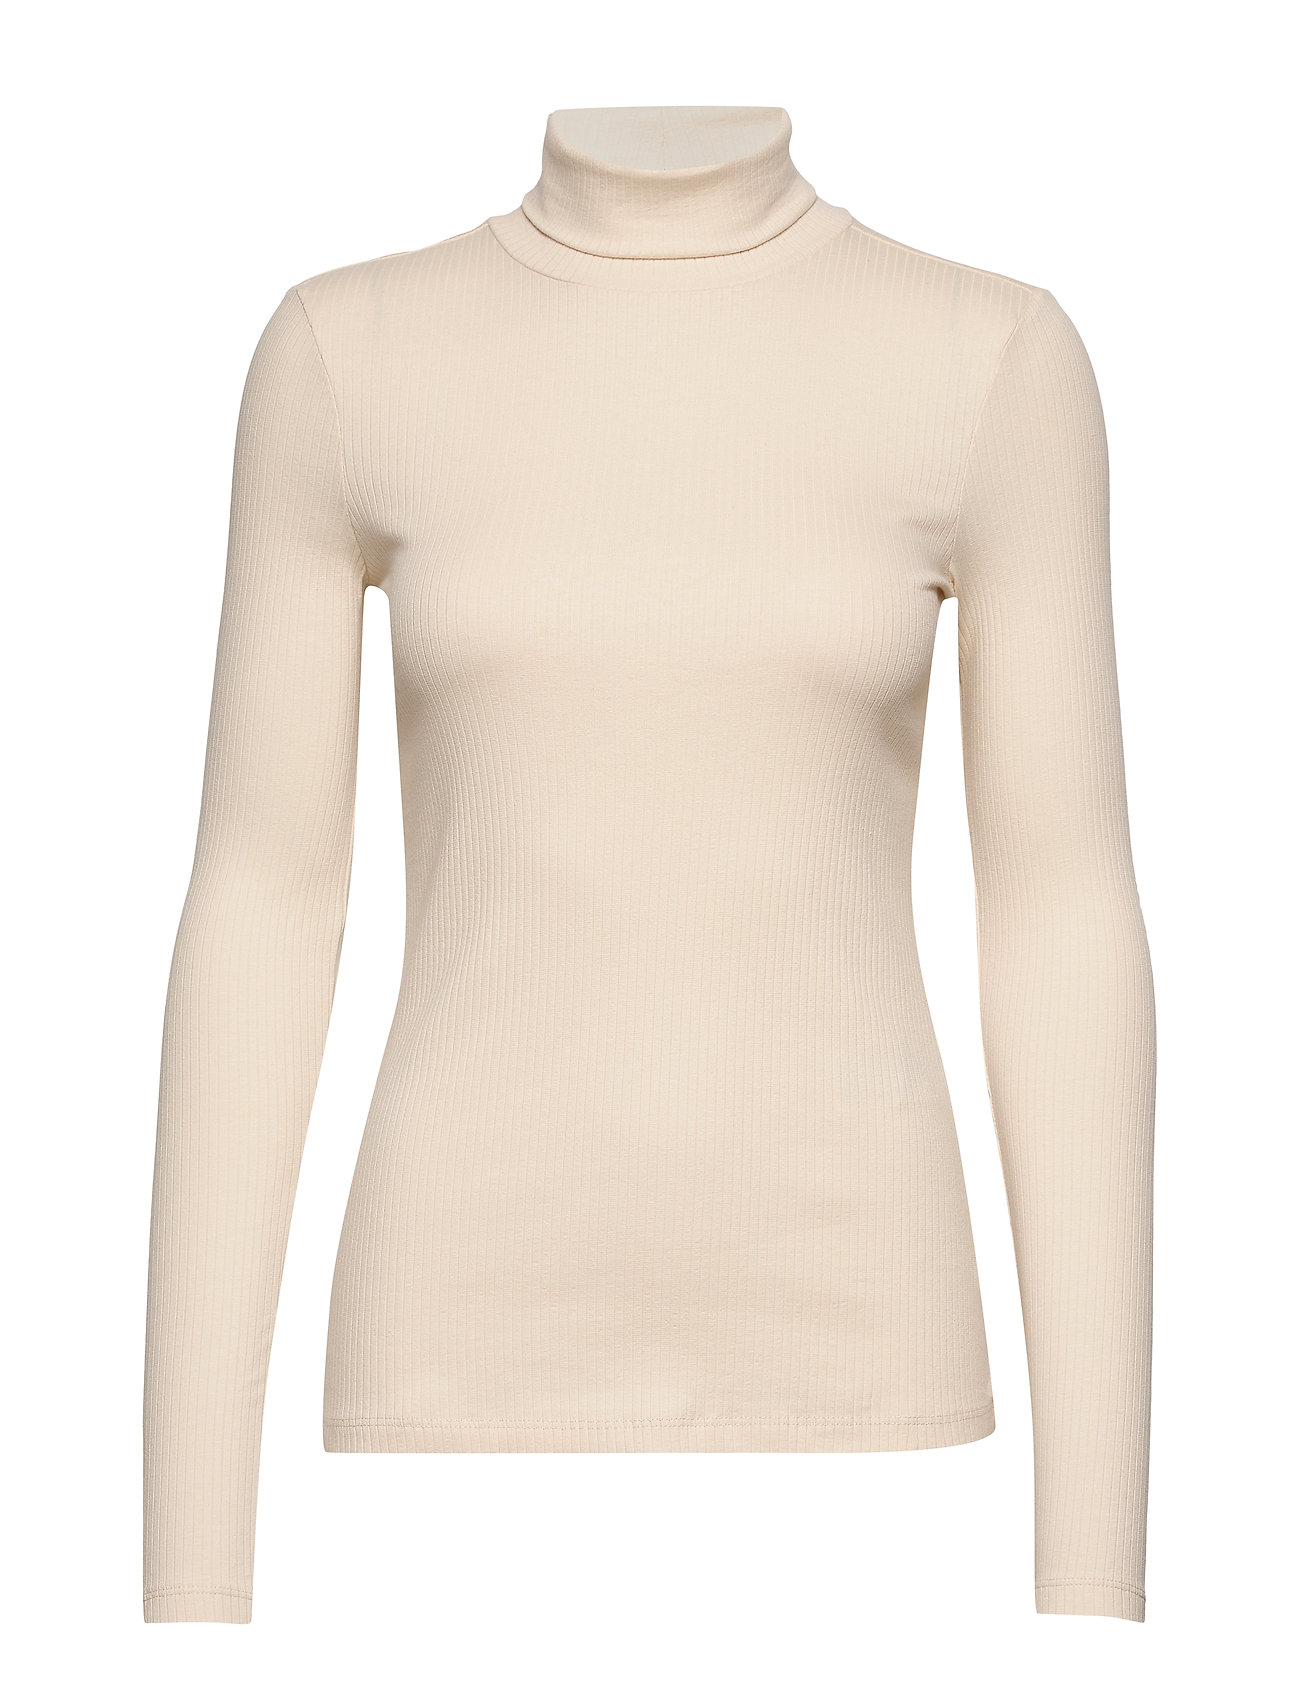 Vero Moda VMIRINA LS ROLL-NECK VMA - BIRCH